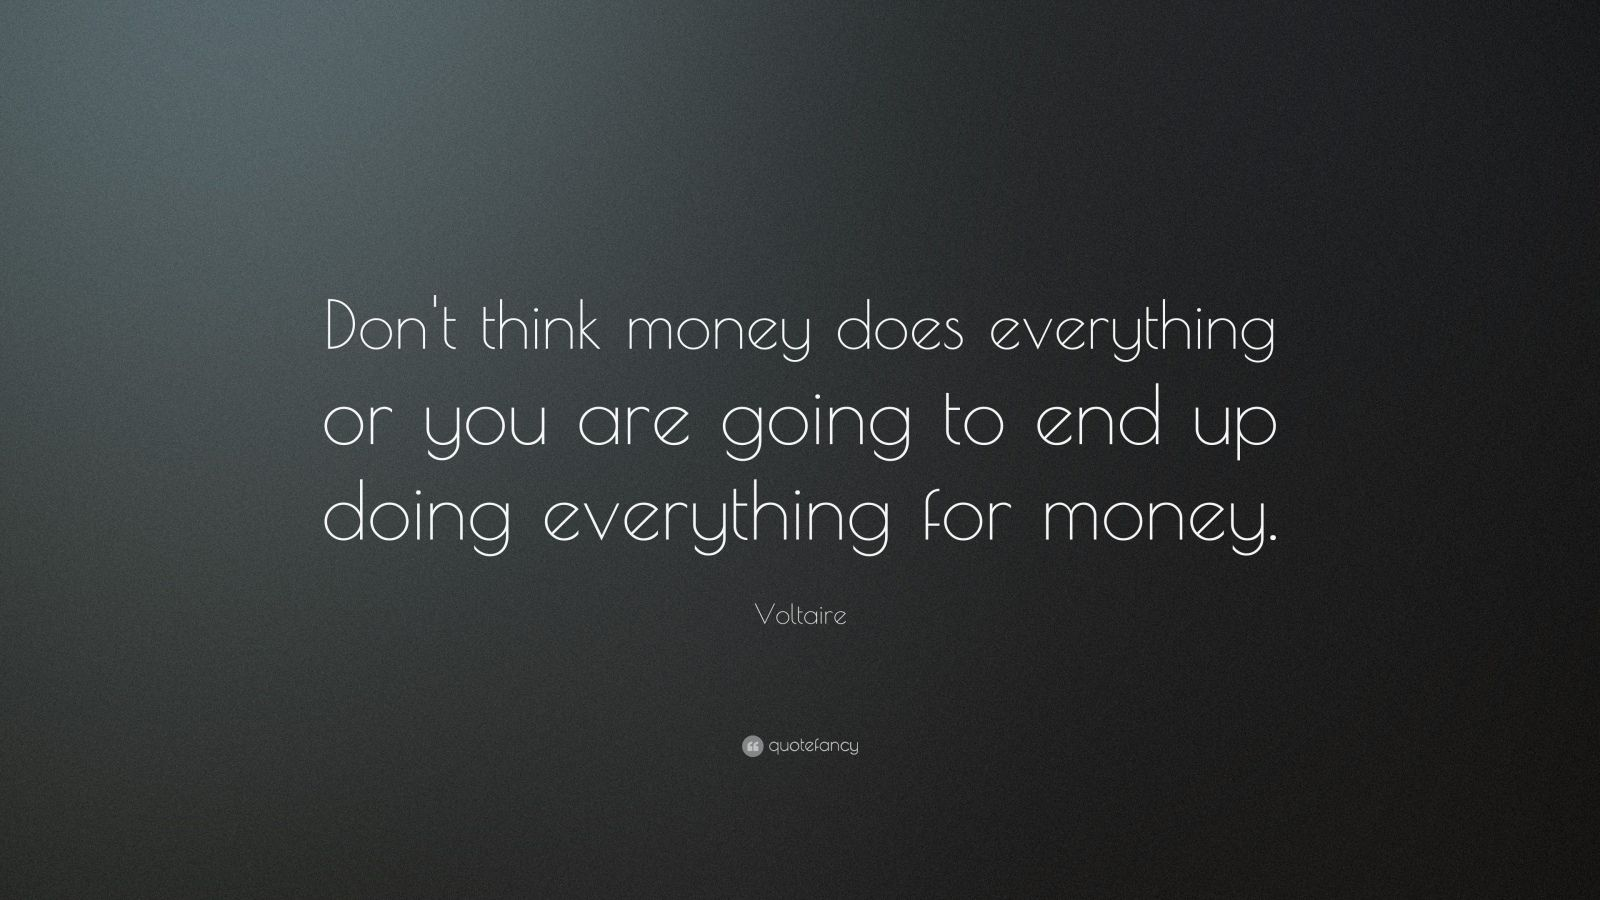 """Voltaire Quote: """"Don't think money does everything or you are going to end up doing everything for money."""""""